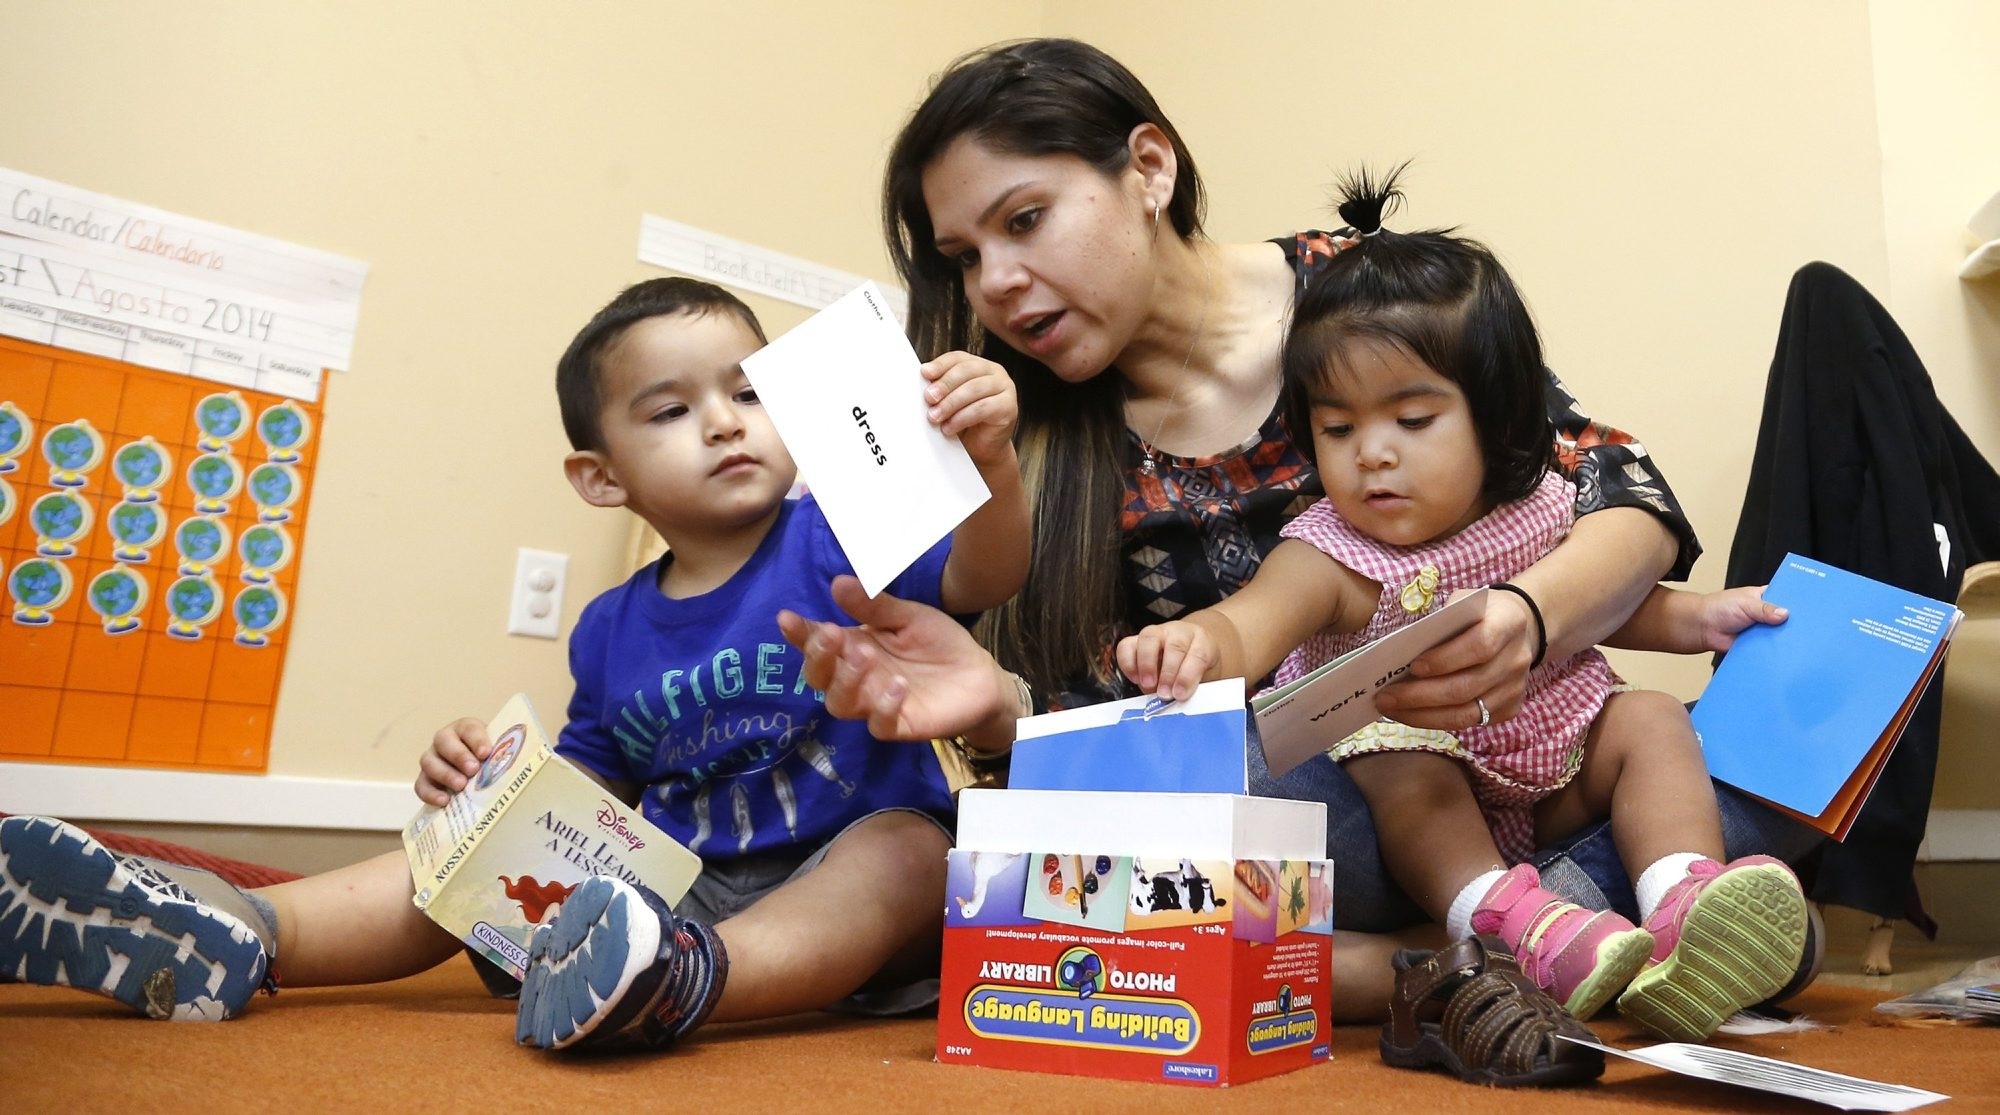 Elizabeth Mancilla, center, one of the teachers at the ChildCareGroup in Dallas, helps Martin Correa, left, 2½, and Andrea Ramirez, 19 months, with a learning exercise on Friday. The ChildCareGroup specializes in educating very young children.